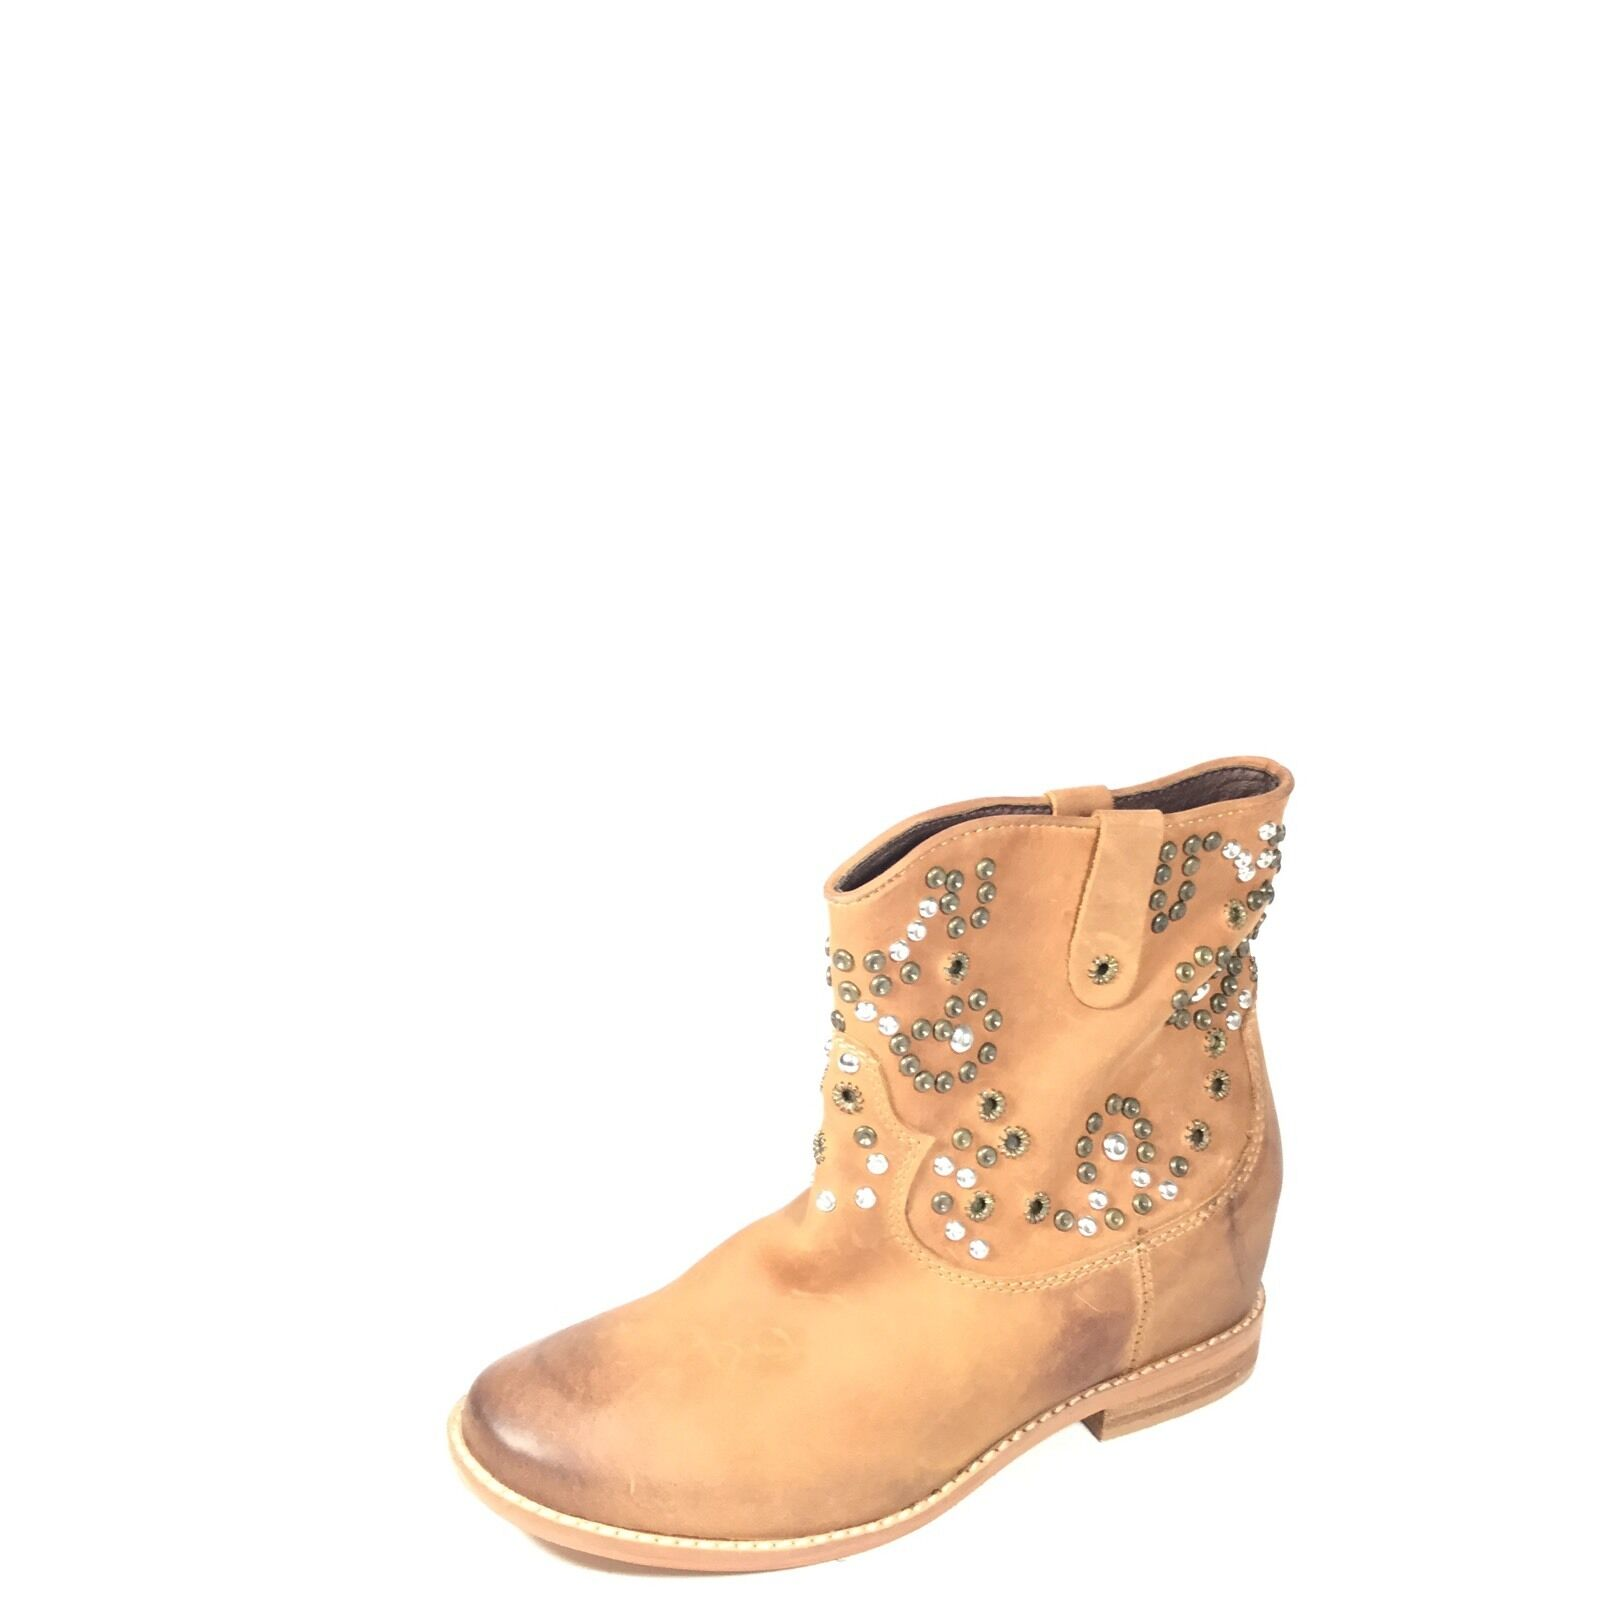 Zigi Girl Truffle Women's Size 7.5 Brown Leather Ankle Boots.